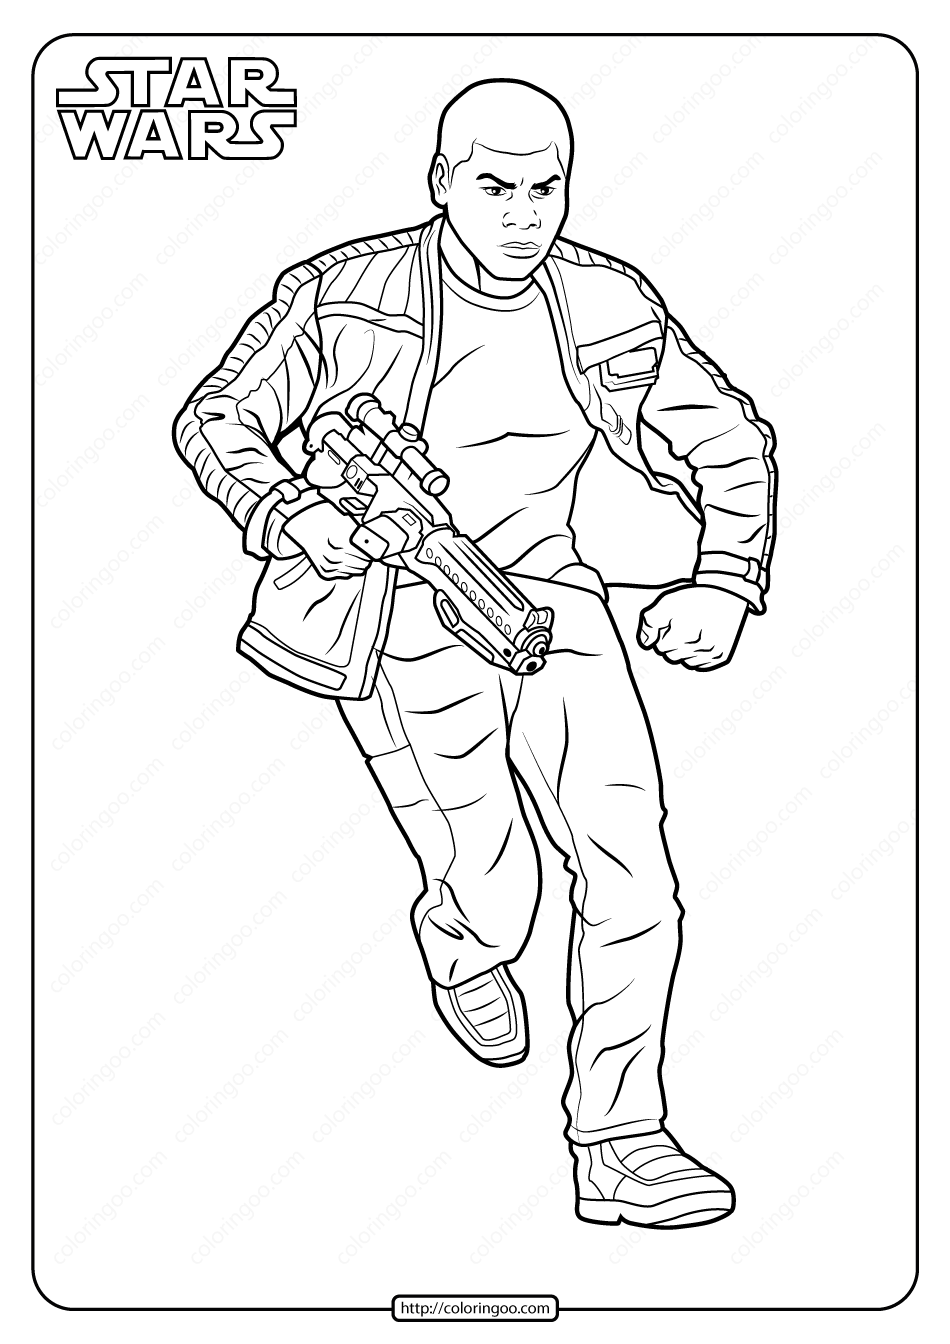 Printable Star Wars Finn Coloring Pages